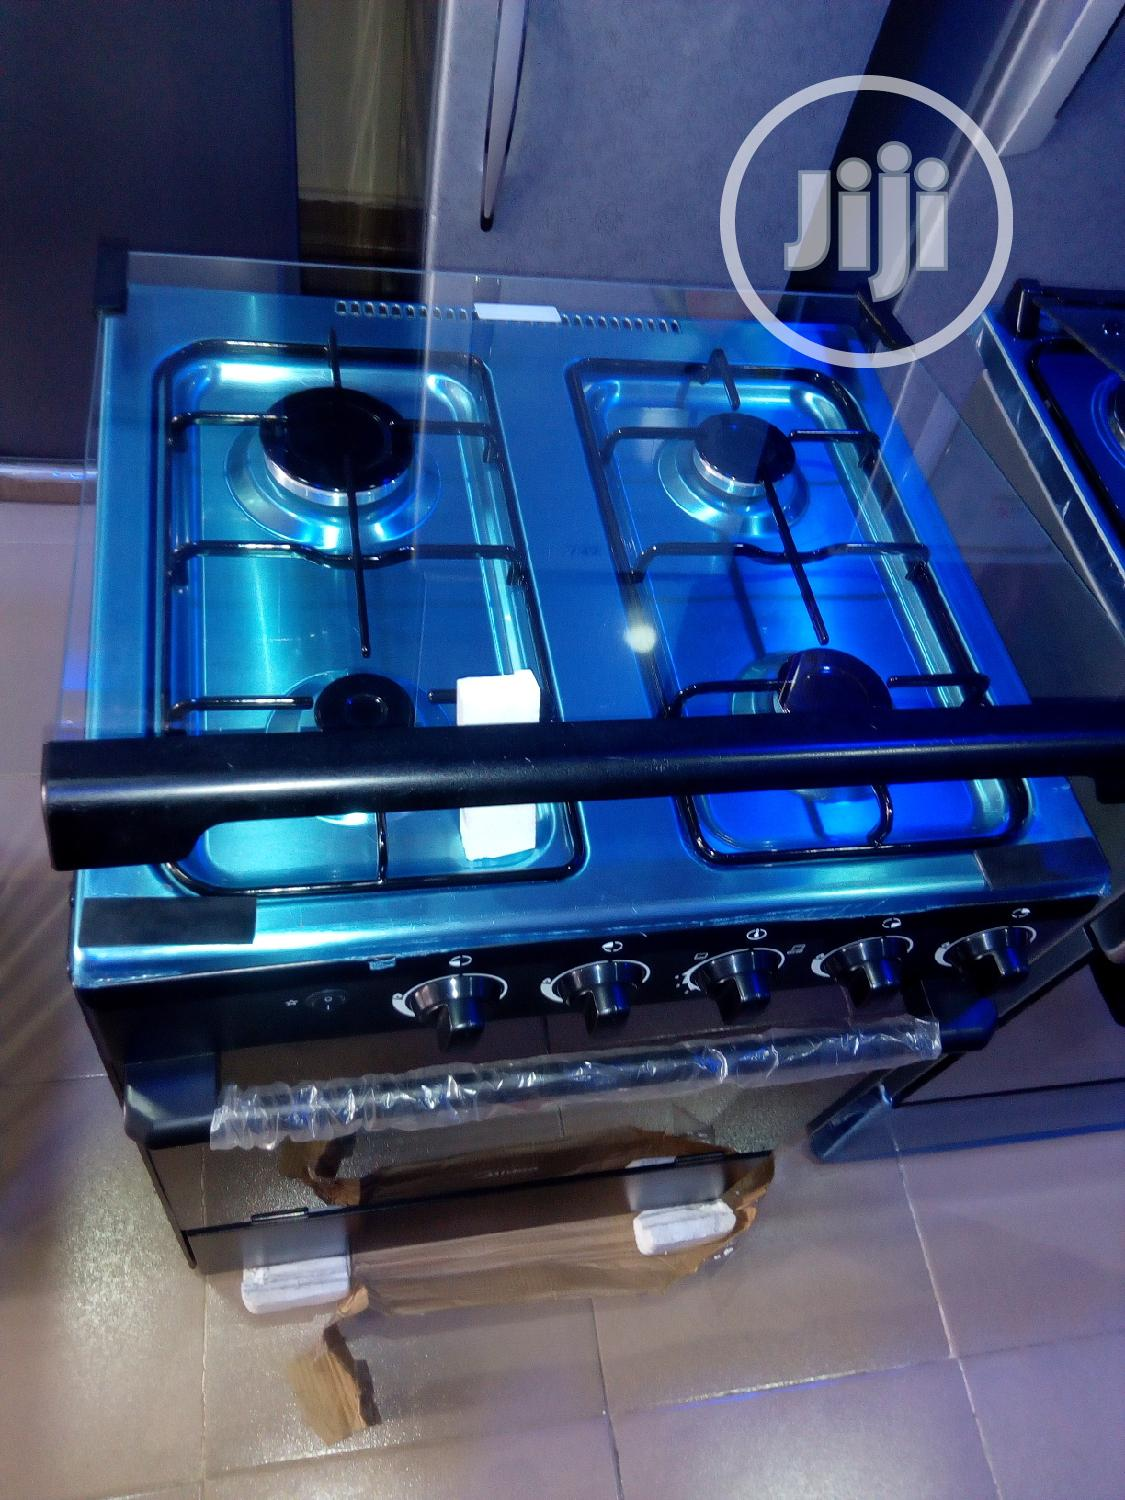 Midea 4 Burner Gas Cooker With Oven - Auto Ignition | Restaurant & Catering Equipment for sale in Ojo, Lagos State, Nigeria